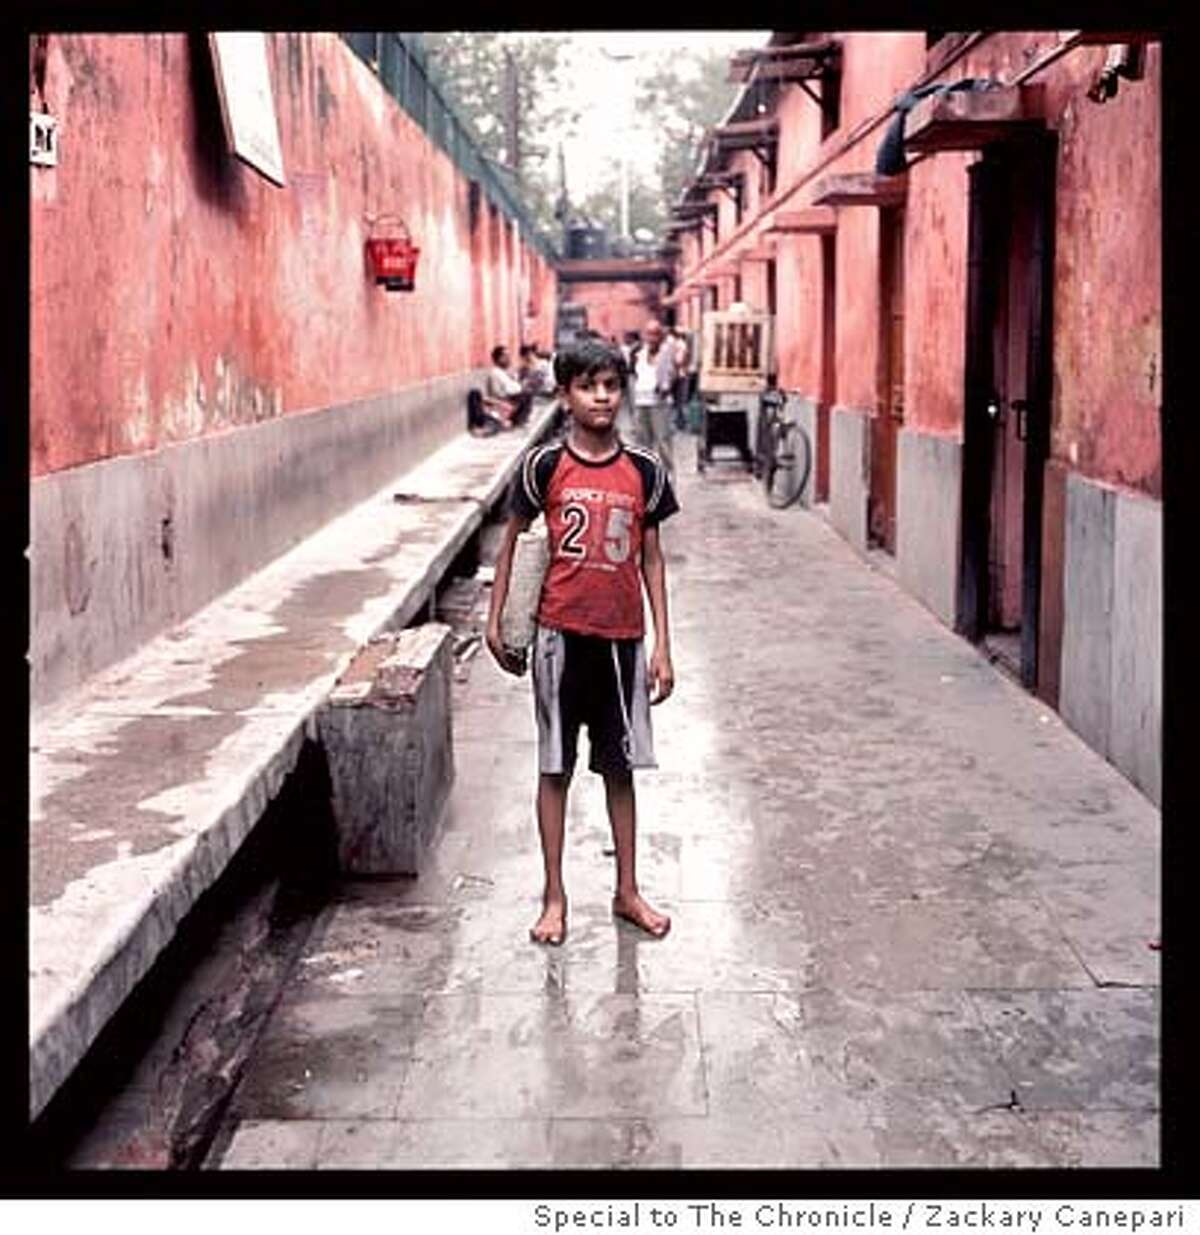 Kanaiya Kumar stands outside the Old Delhi boy's shelter. Zackary Canepari / Special to The Chronicle MANDATORY CREDIT FOR PHOTOG AND SAN FRANCISCO CHRONICLE/NO SALES-MAGS OUT